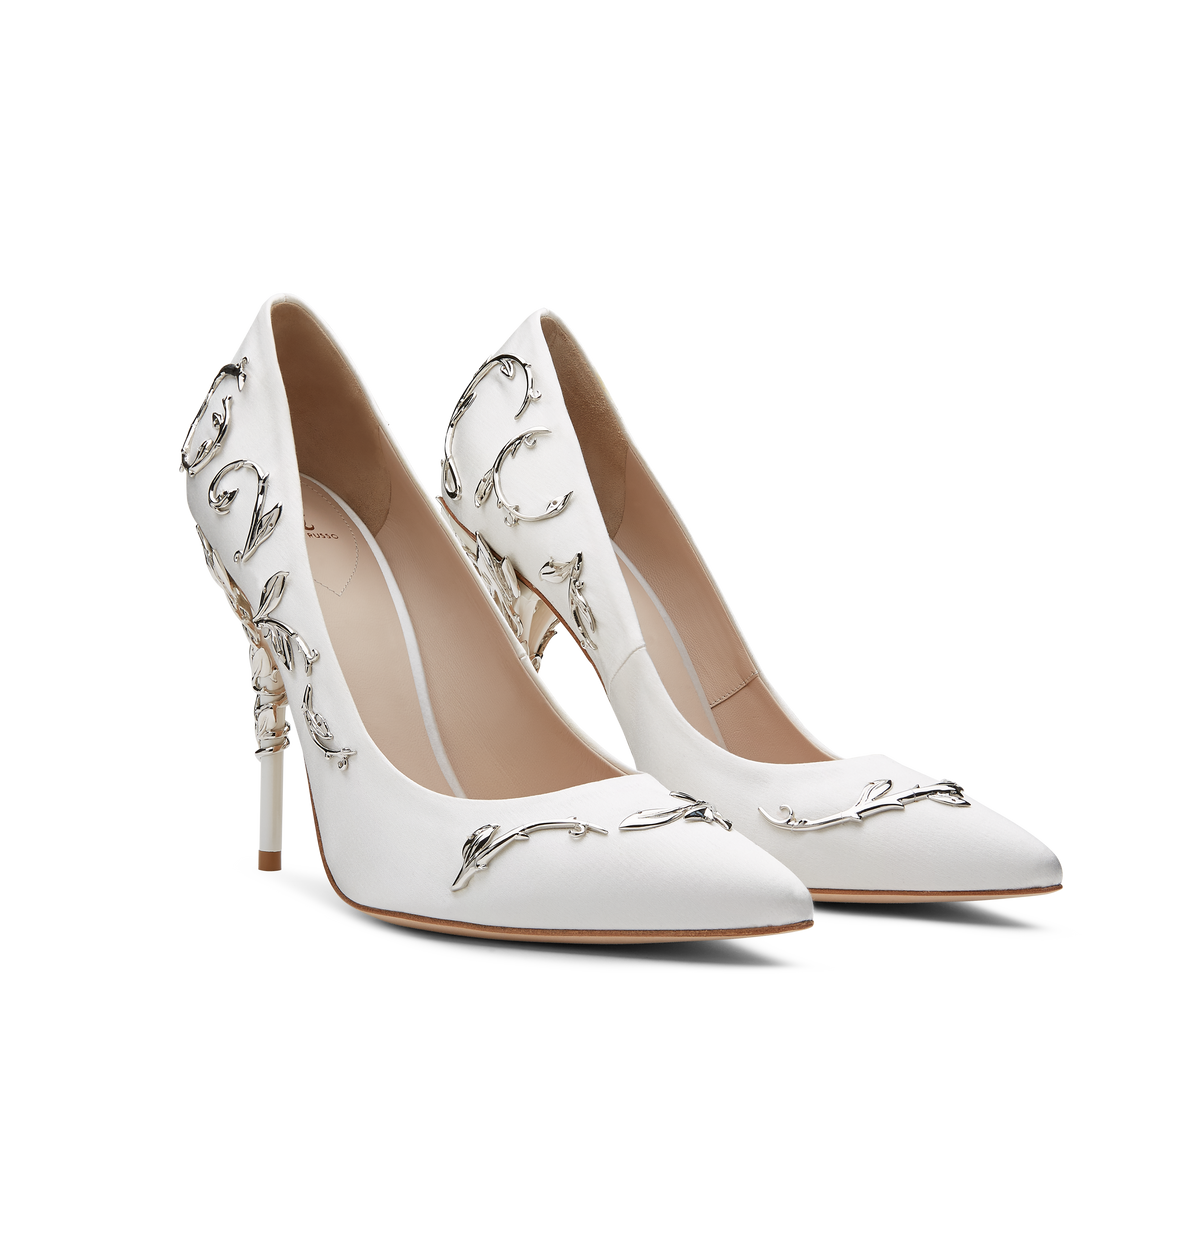 White Satin Eden Pumps with Silver Leaves